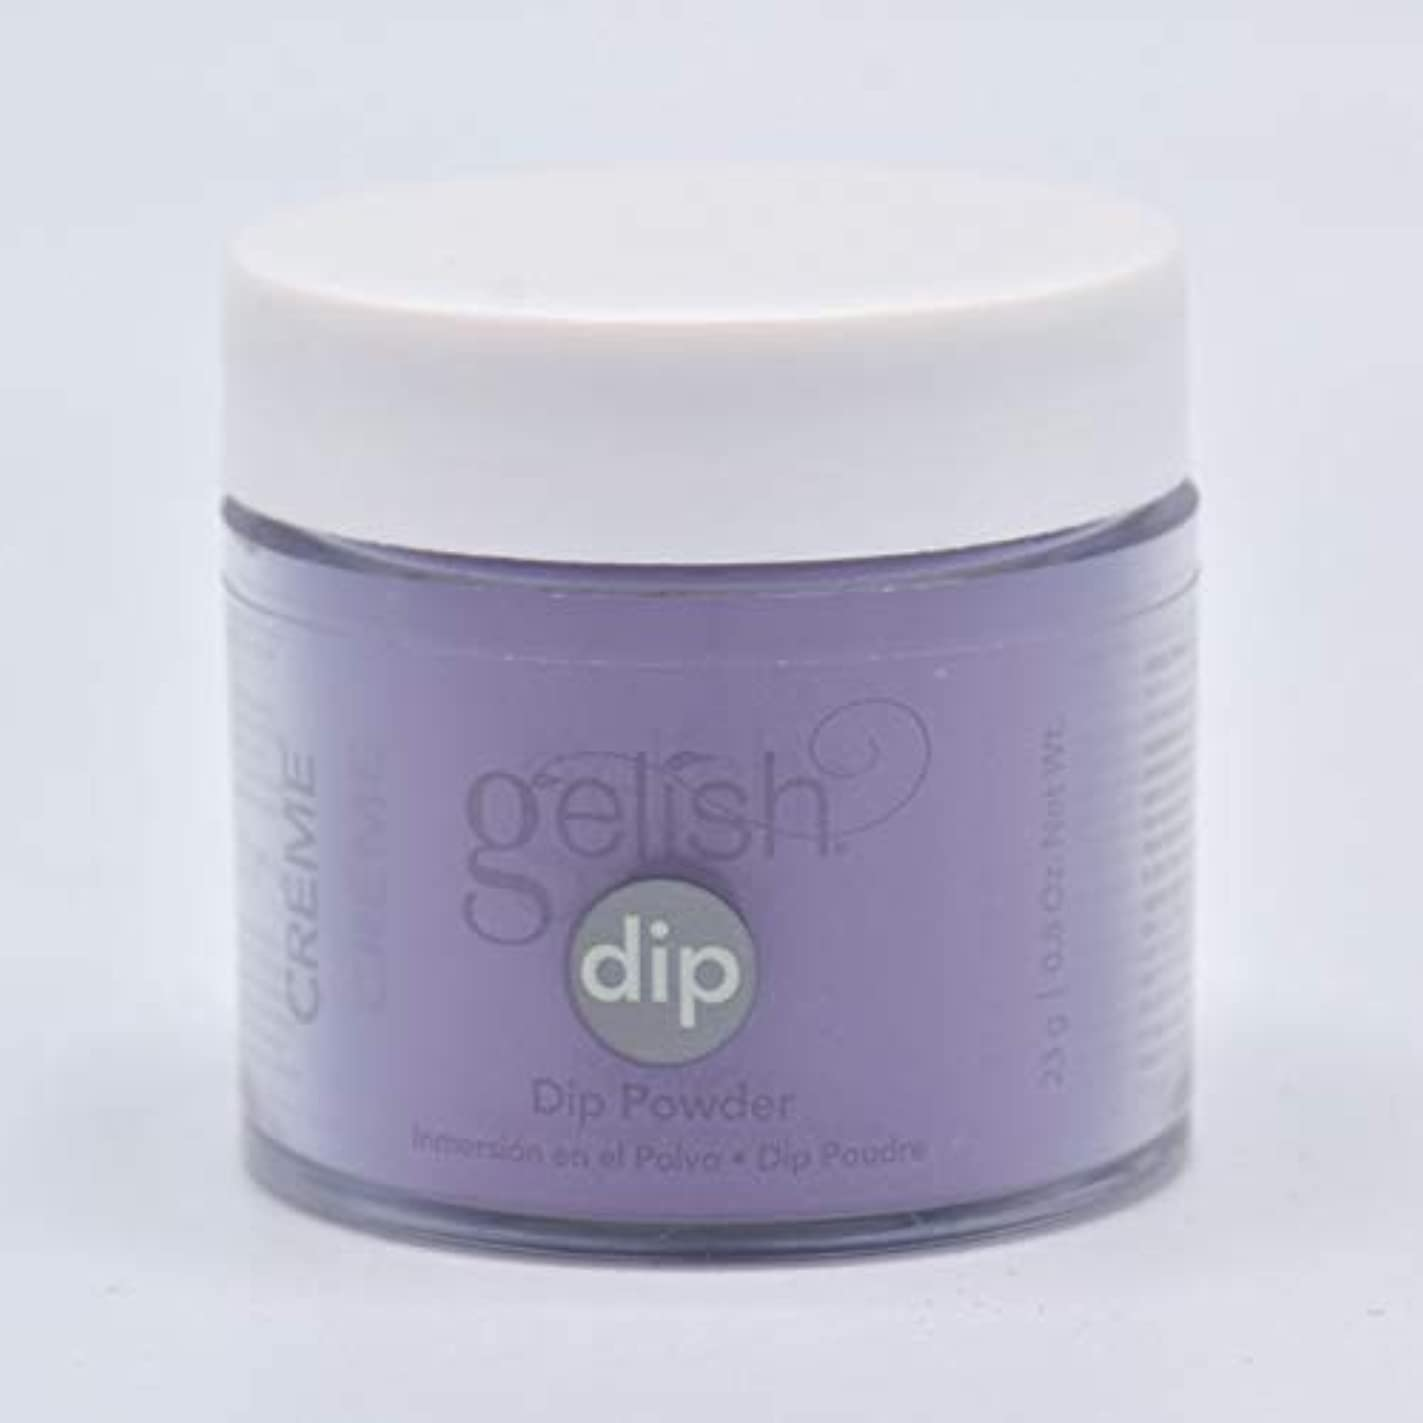 量で旅行カートHarmony Gelish - Acrylic Dip Powder - Black Cherry Berry - 23g / 0.8oz